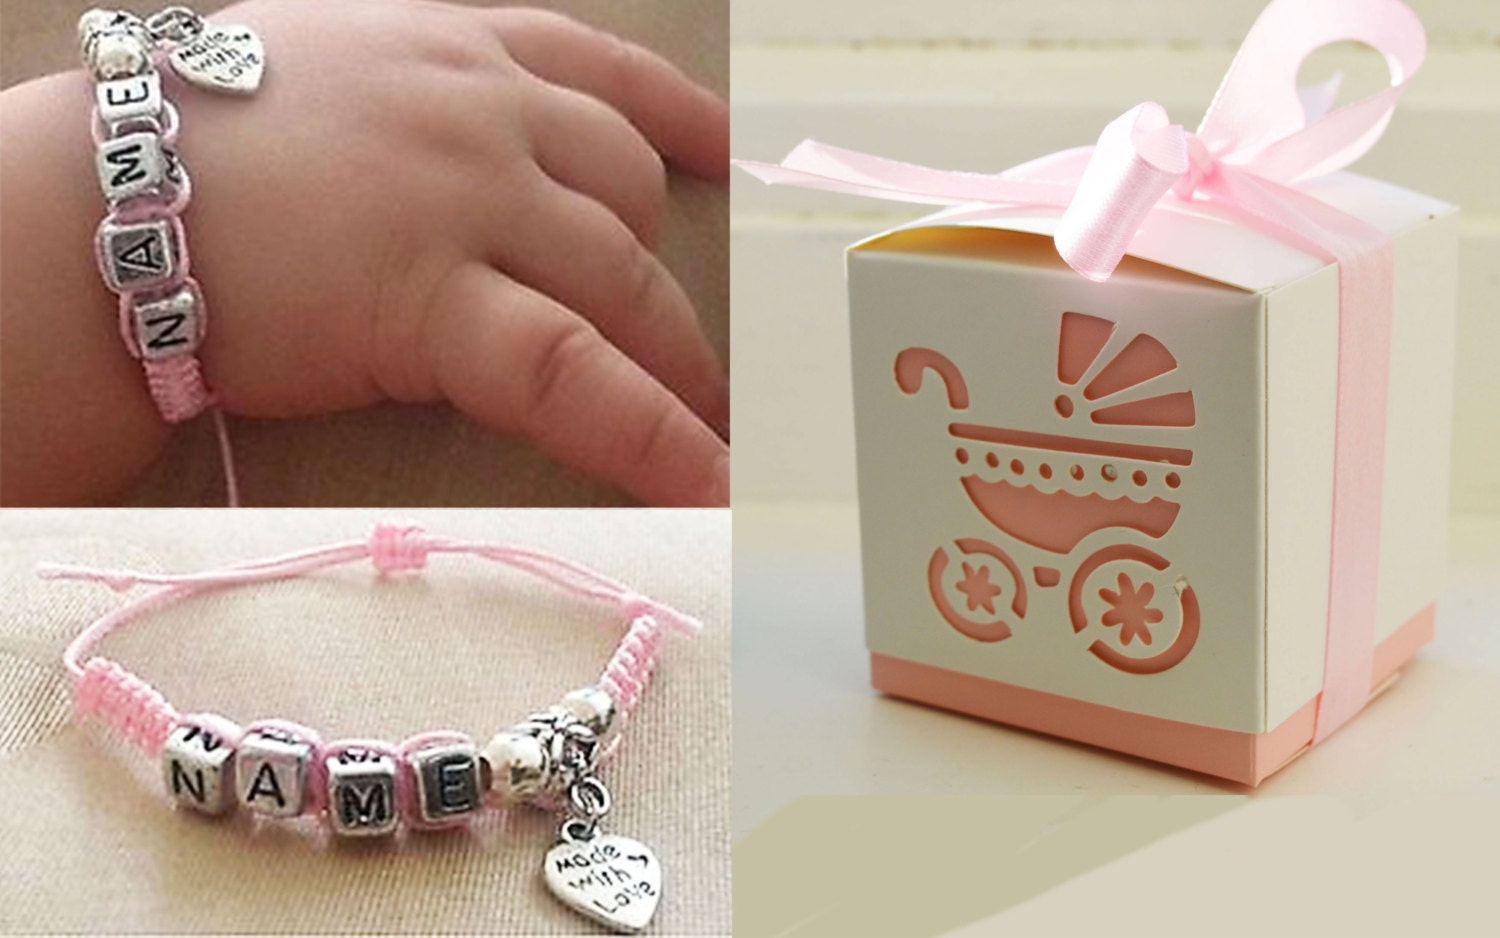 Baby bangle gift box : Baby name bracelet with gift box by simpleandsmall on